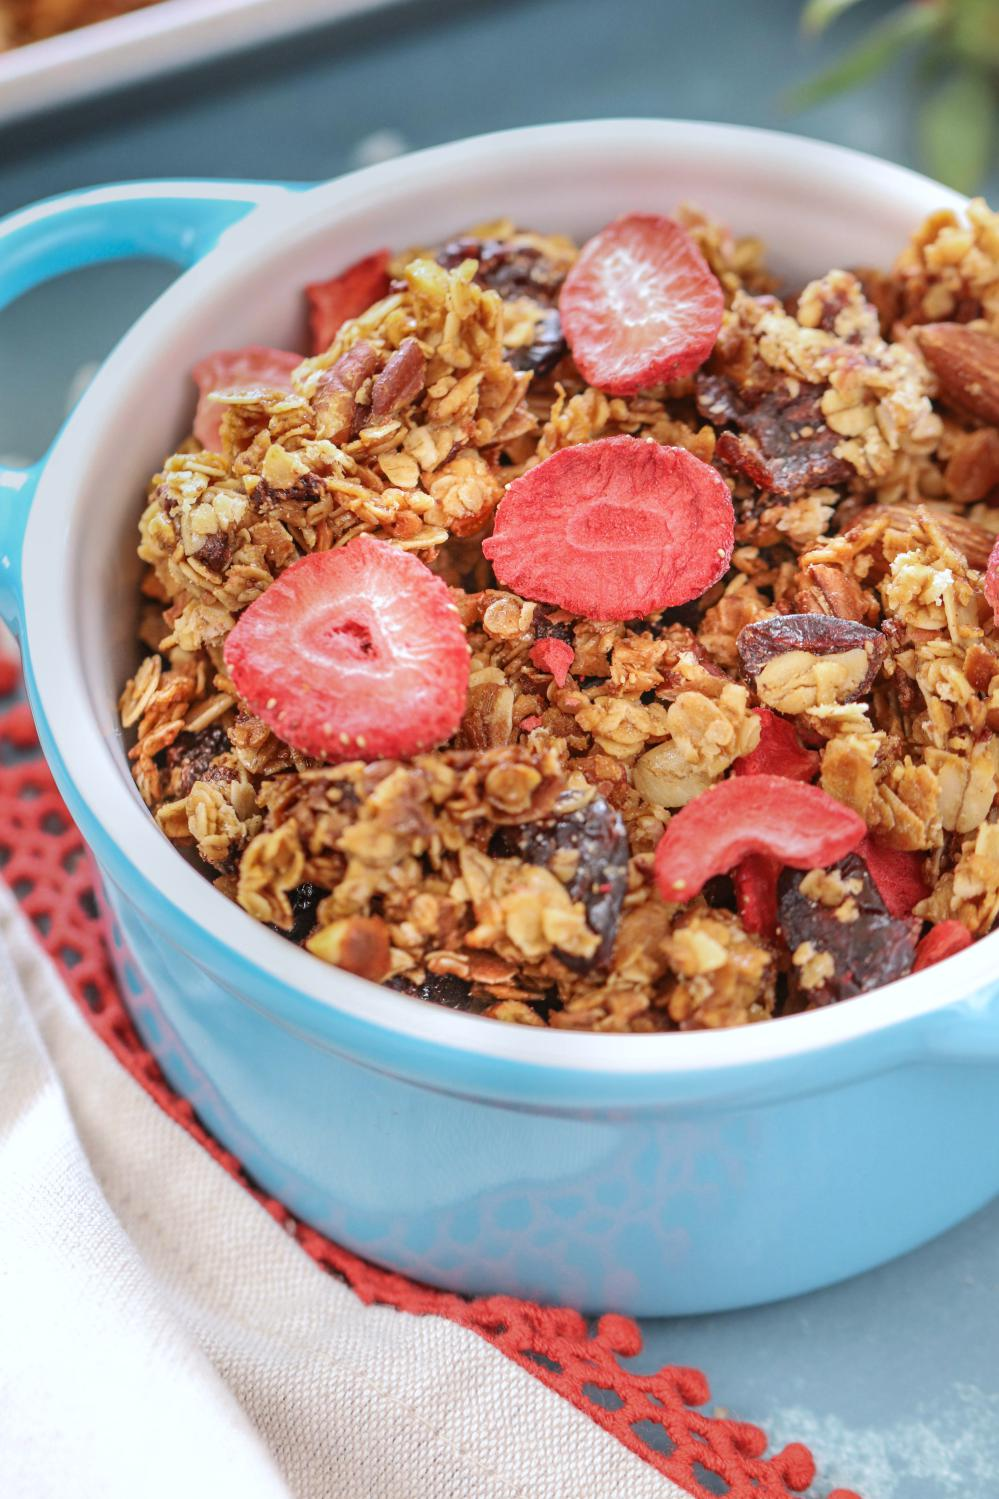 Gluten Free Strawberry Almond Granola| Ruchiskitchen